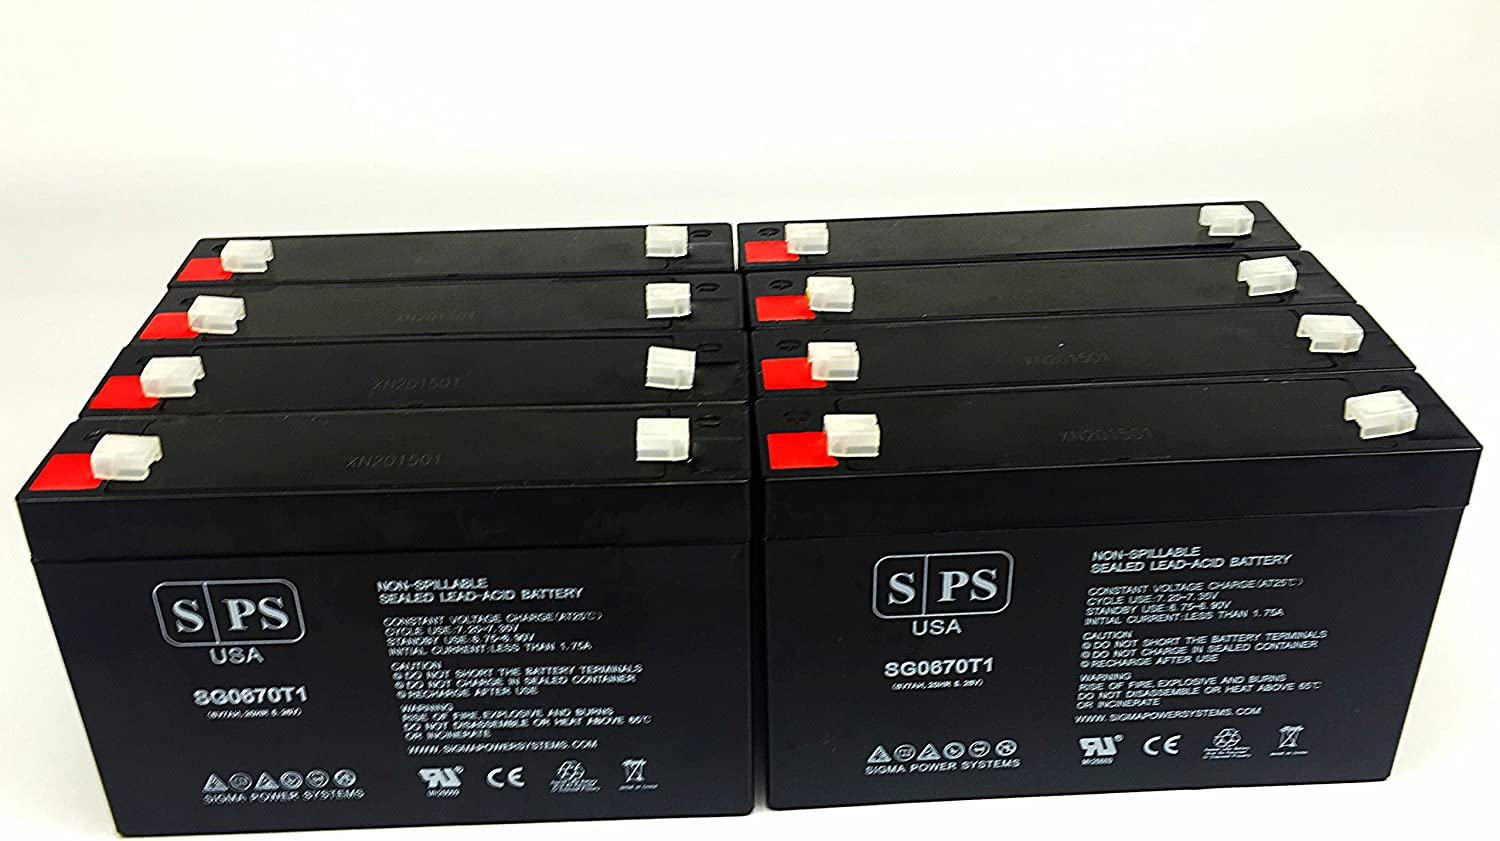 This is an AJC Brand Replacement Ritar RT670 6V 7Ah UPS Battery